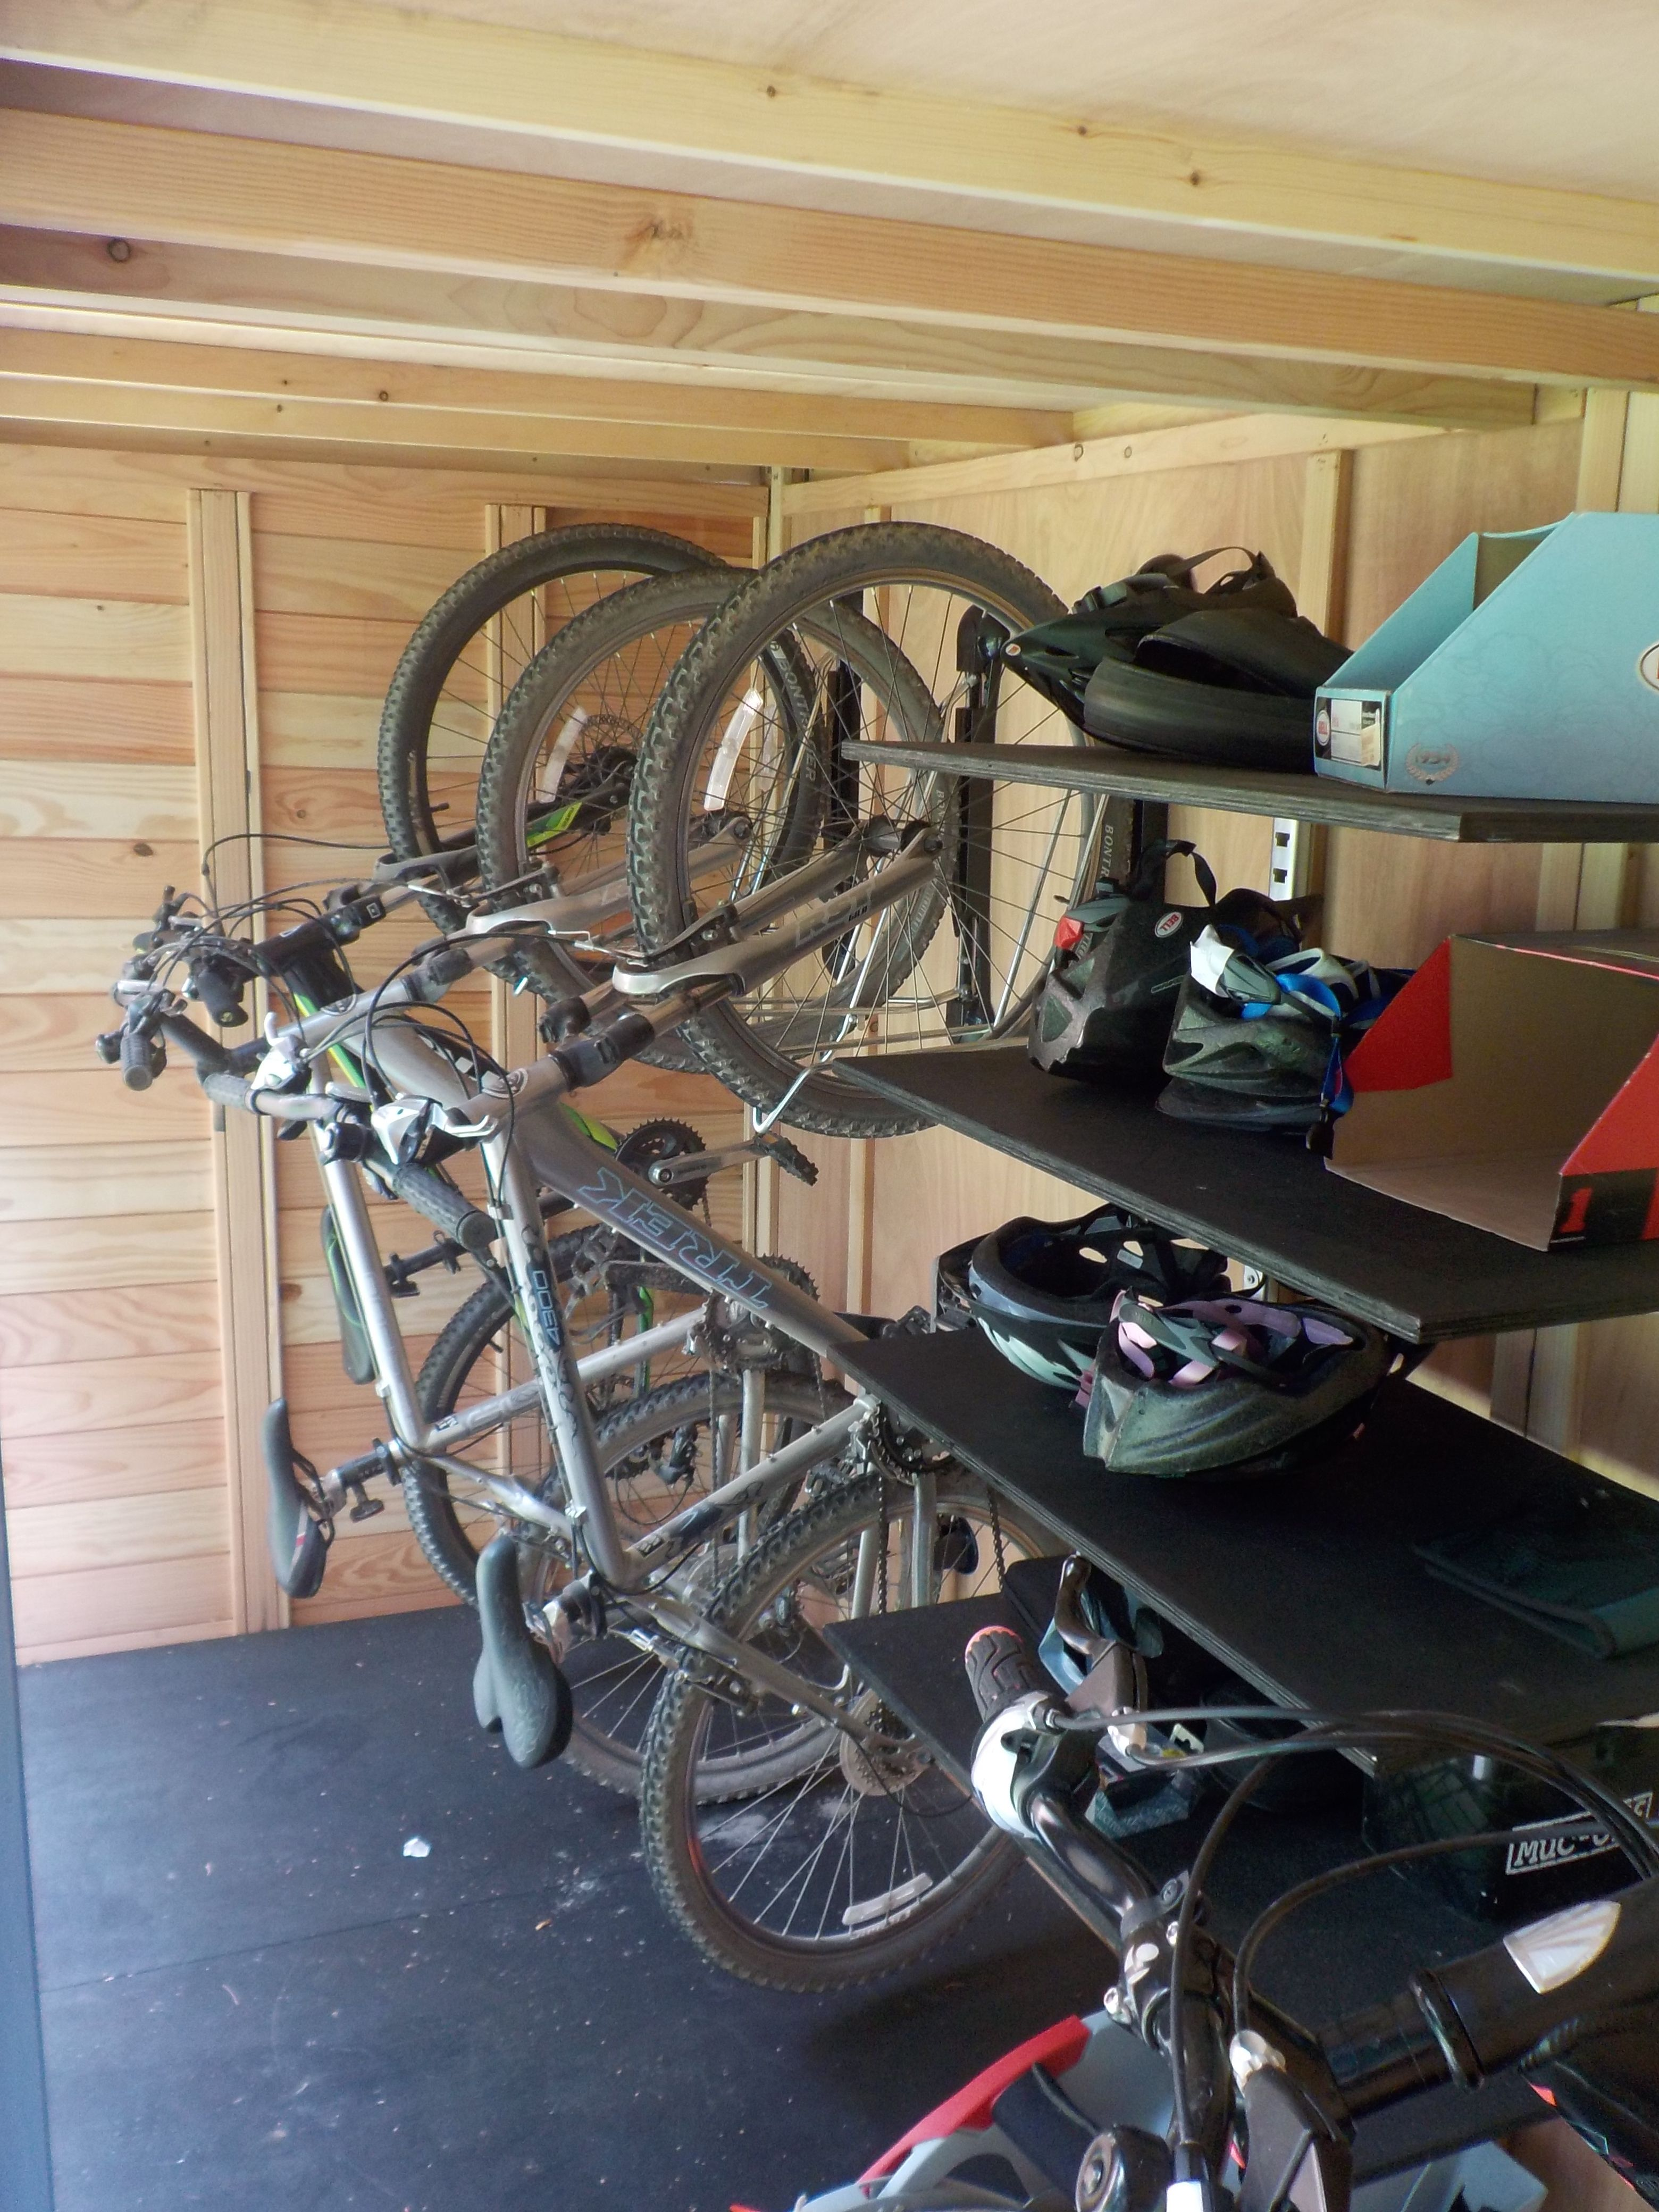 A Great Way To Store Bikes If Your Front Garden Or Other Space Has